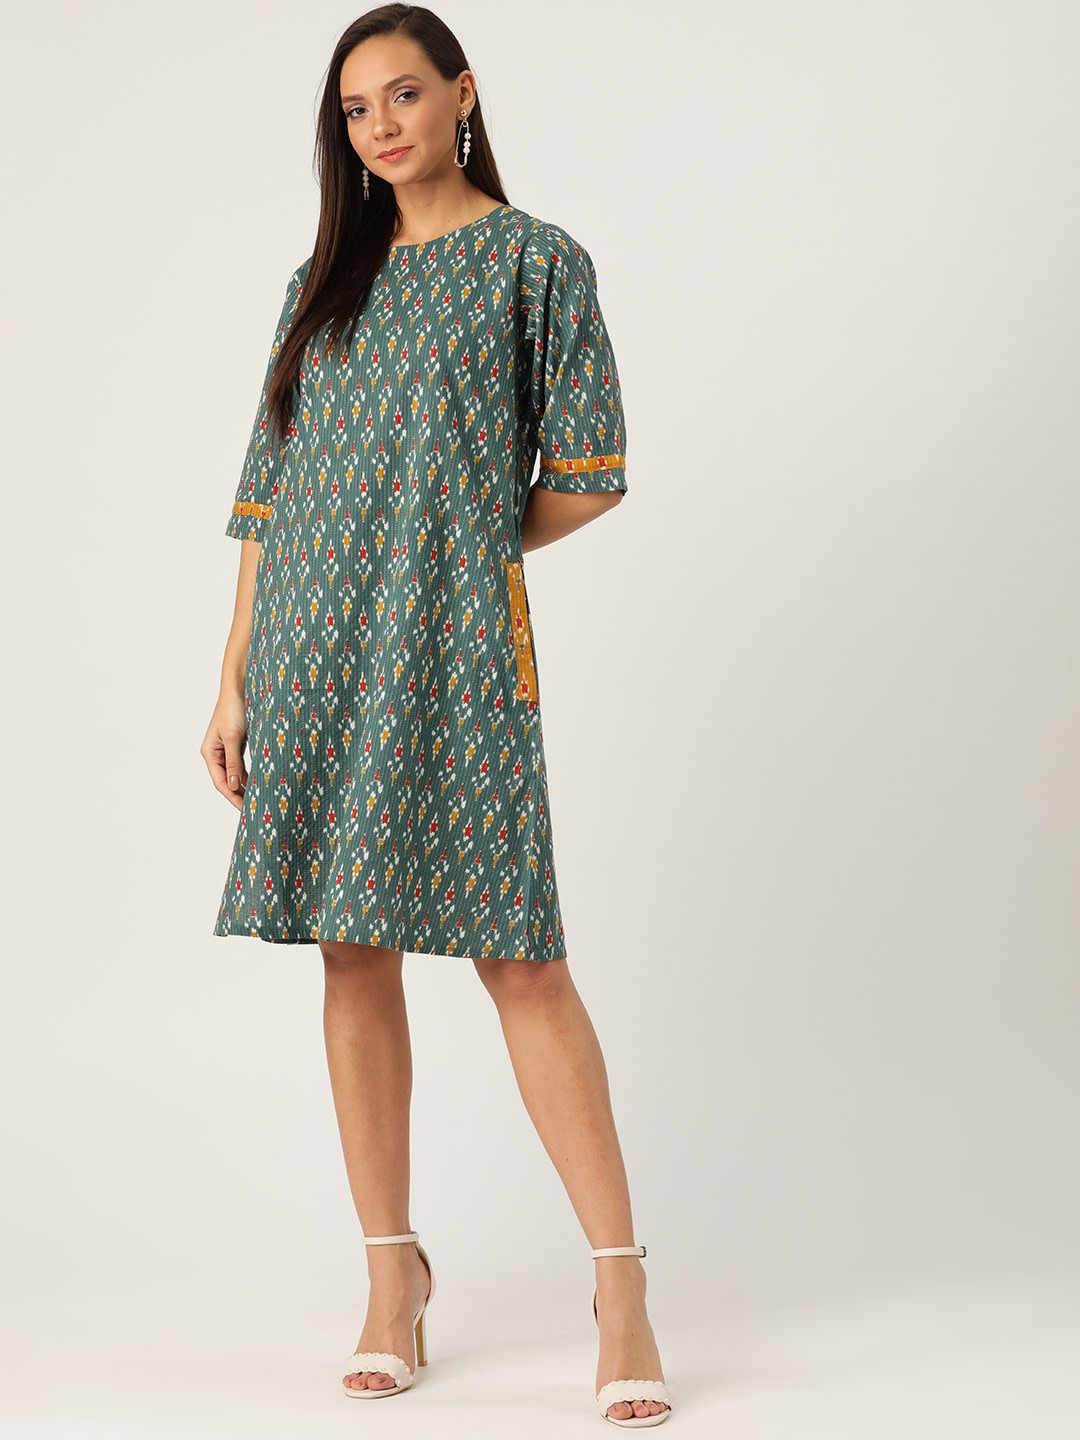 GREEN KANTHA IKKAT DRESS